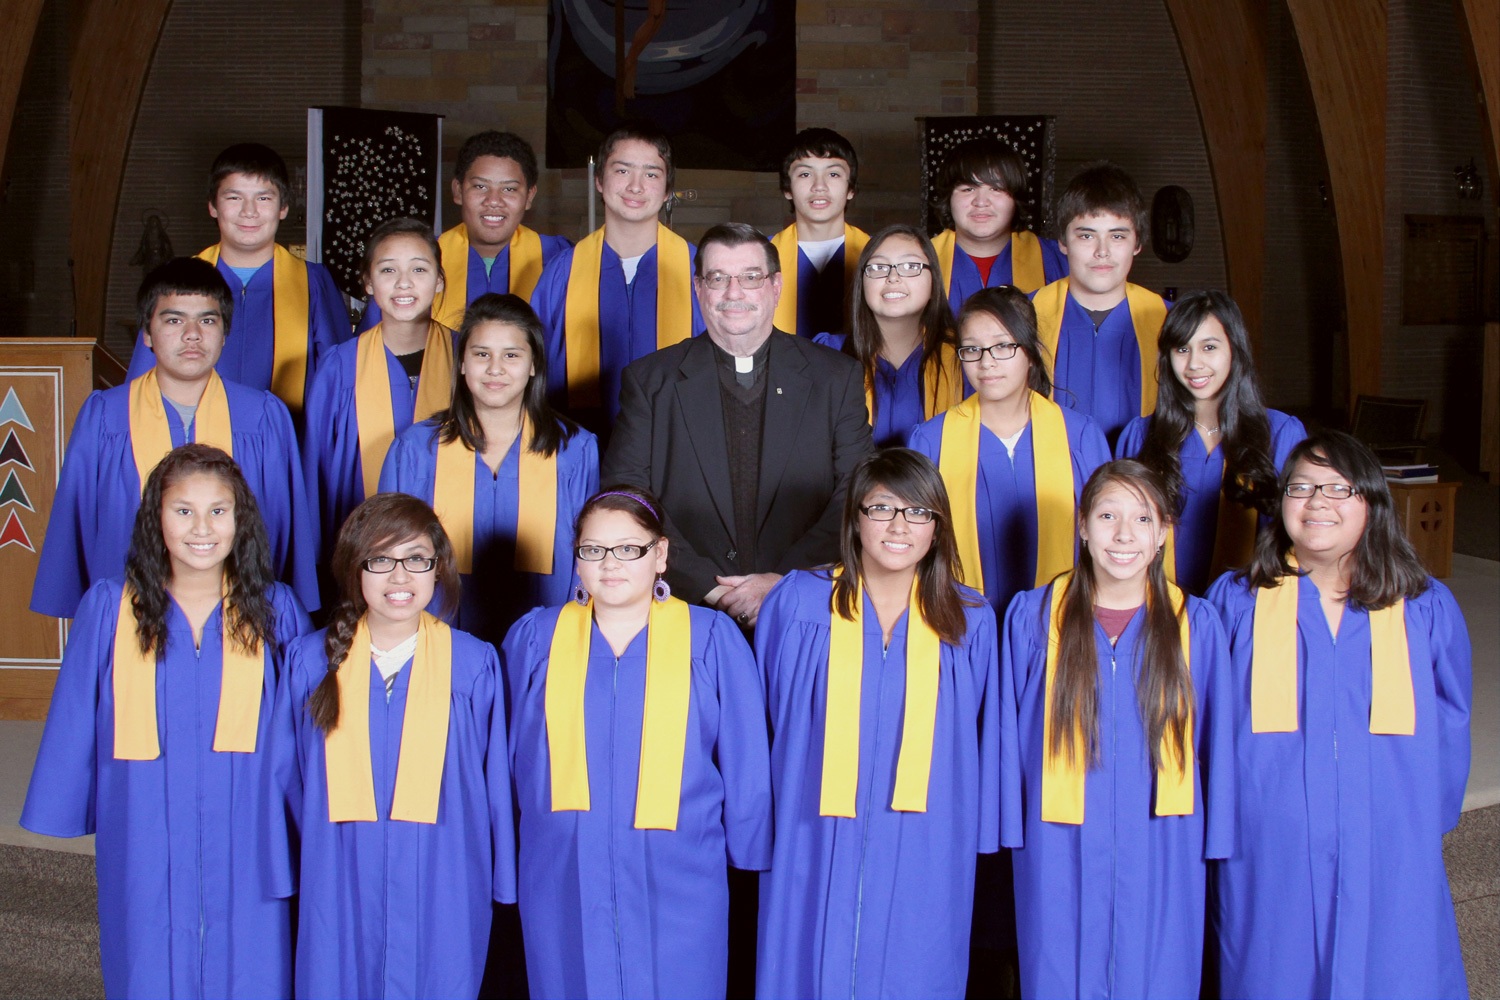 St. Joseph's eighth graders will graduate on Friday, May 23, 2014.